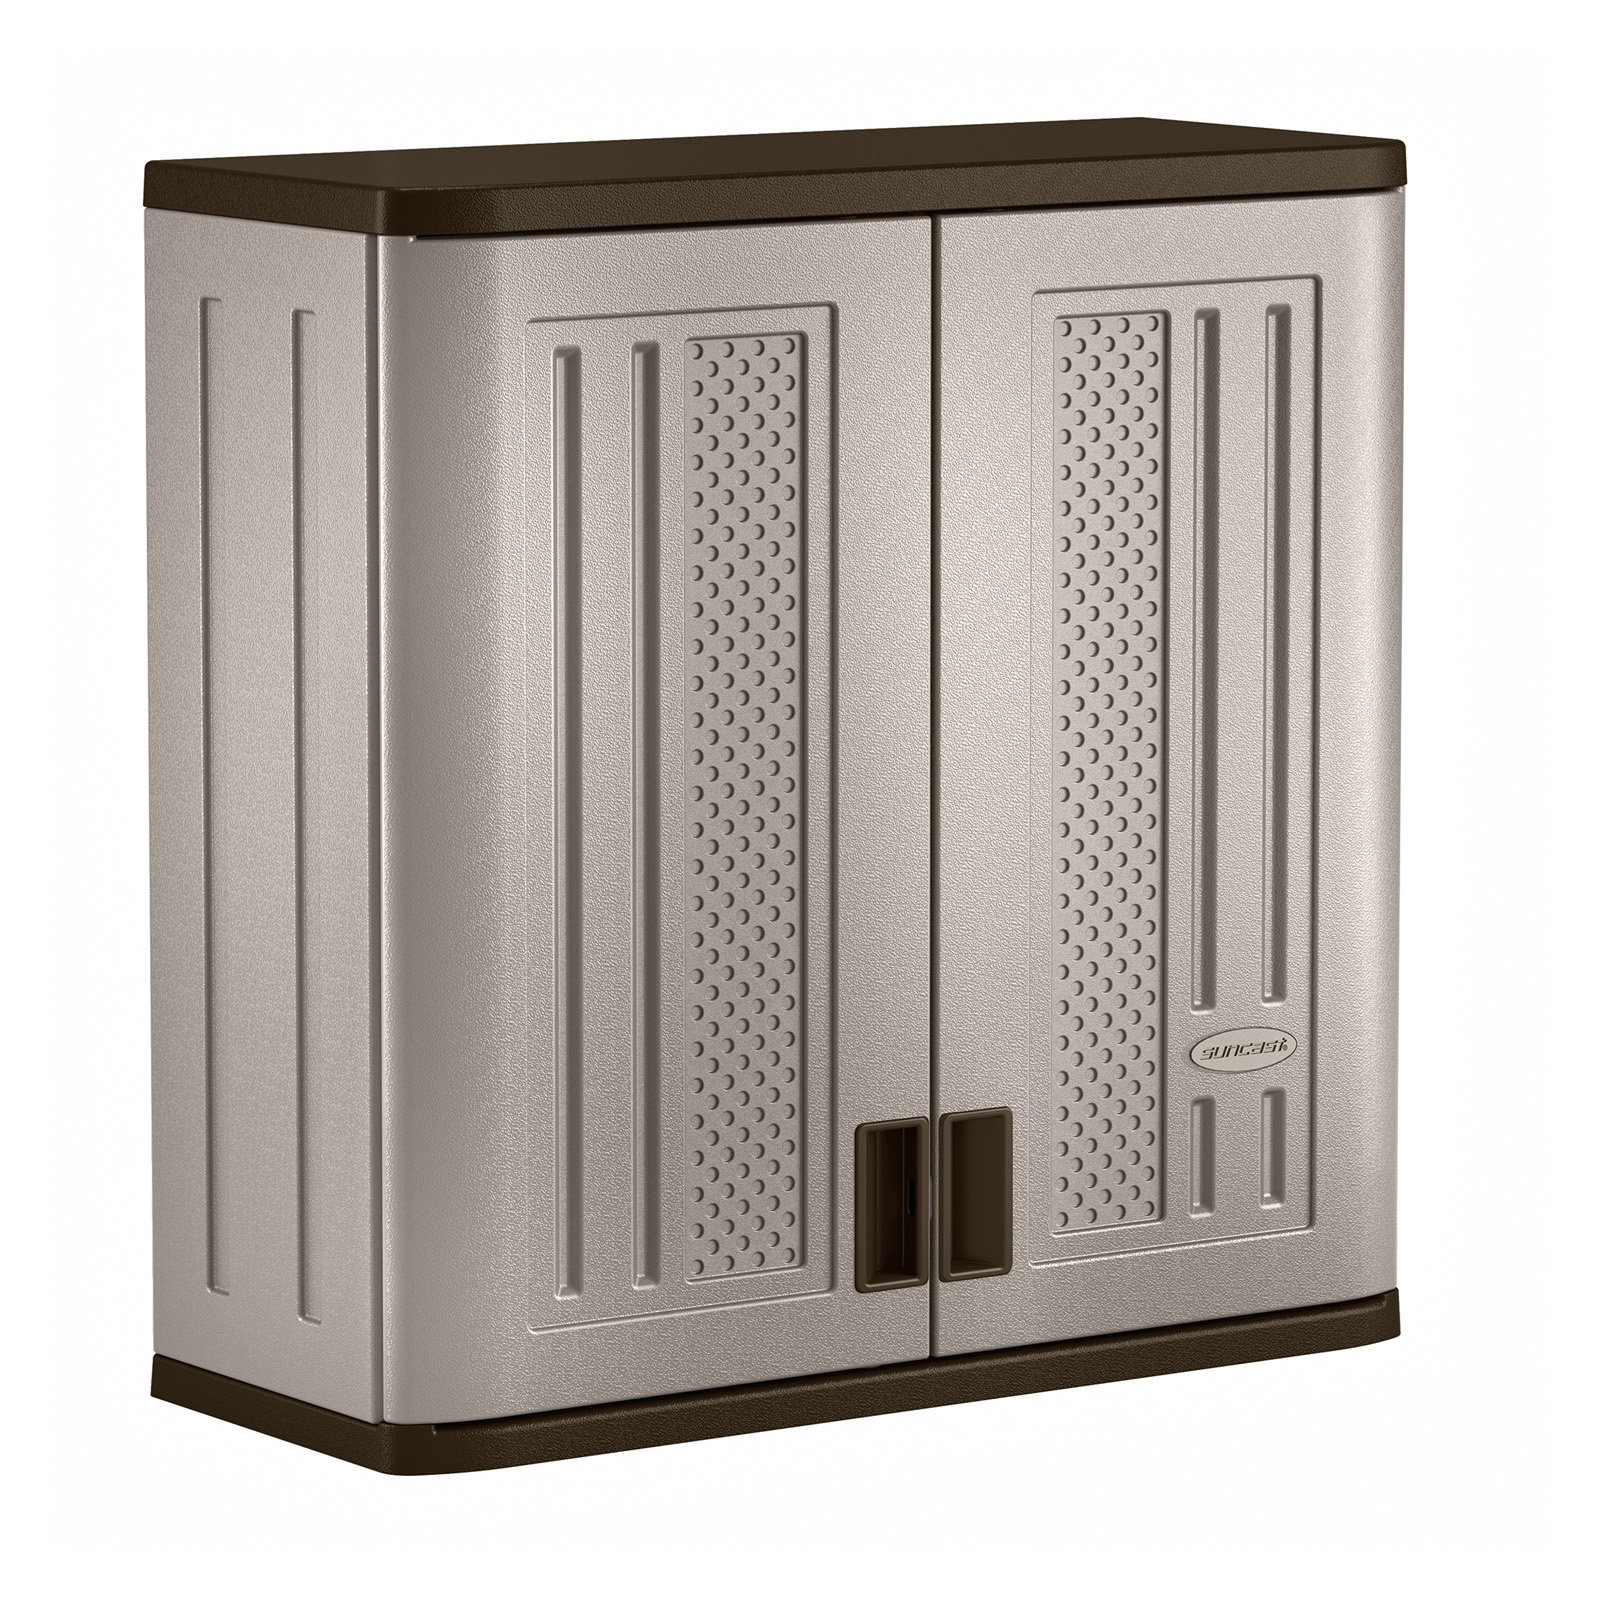 "Suncast 30""W x 12""D x 30.25""H Resin Wall Storage Cabinet,BMC3000"